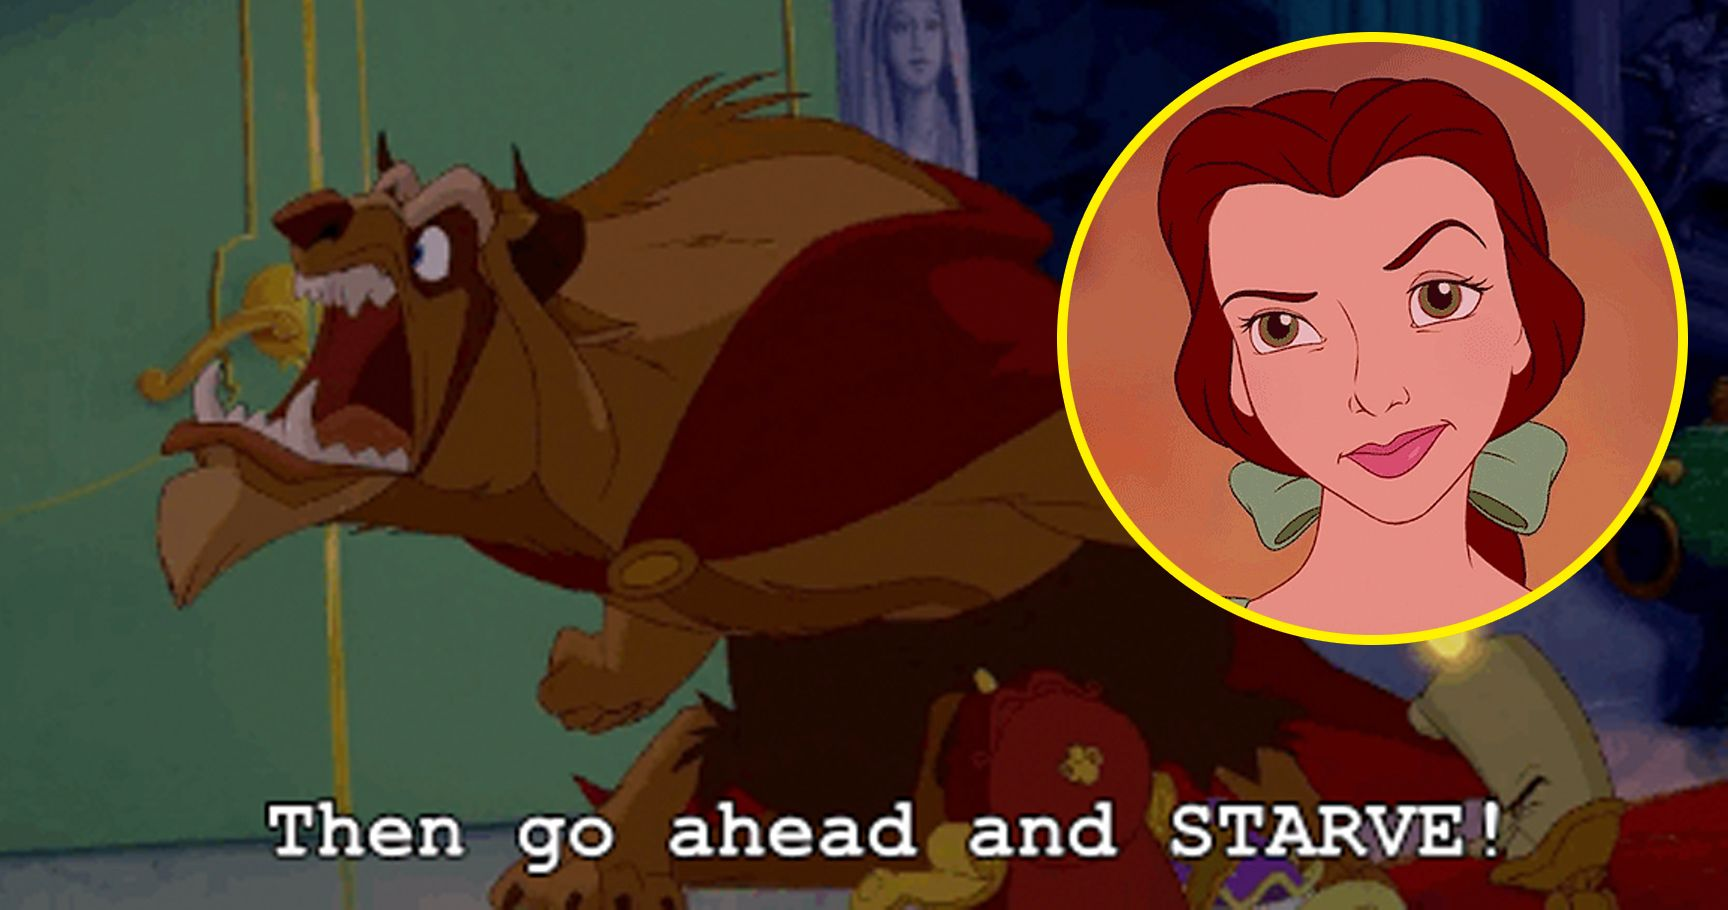 15 Disney Prince Charmings Who Were Actually Total D-bags